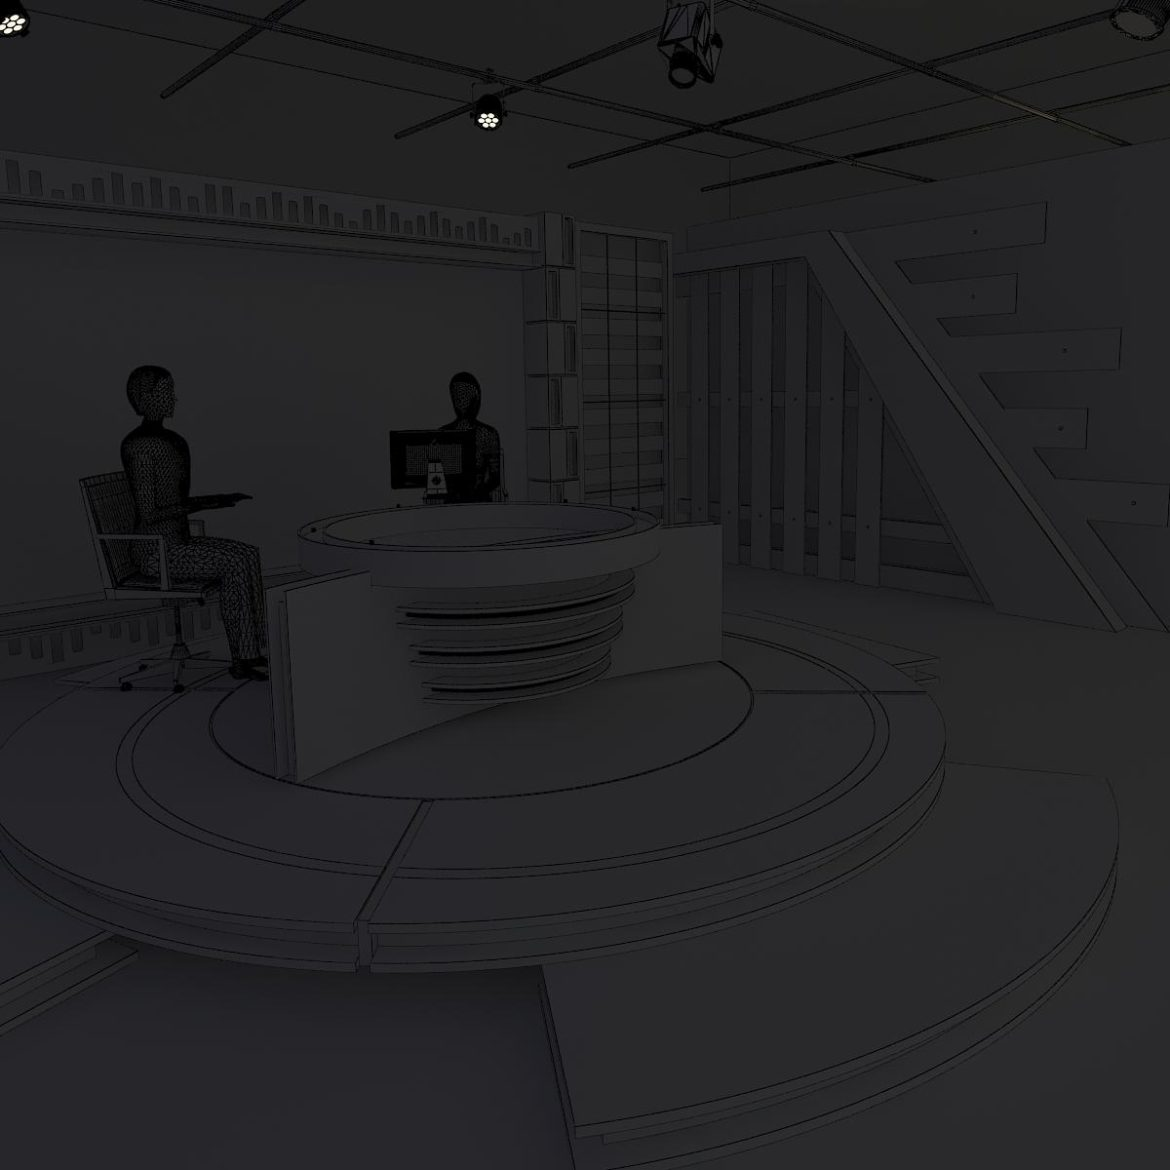 virtual tv studio news set 6 3d model 3ds c4d dxf fbx max obj 305599